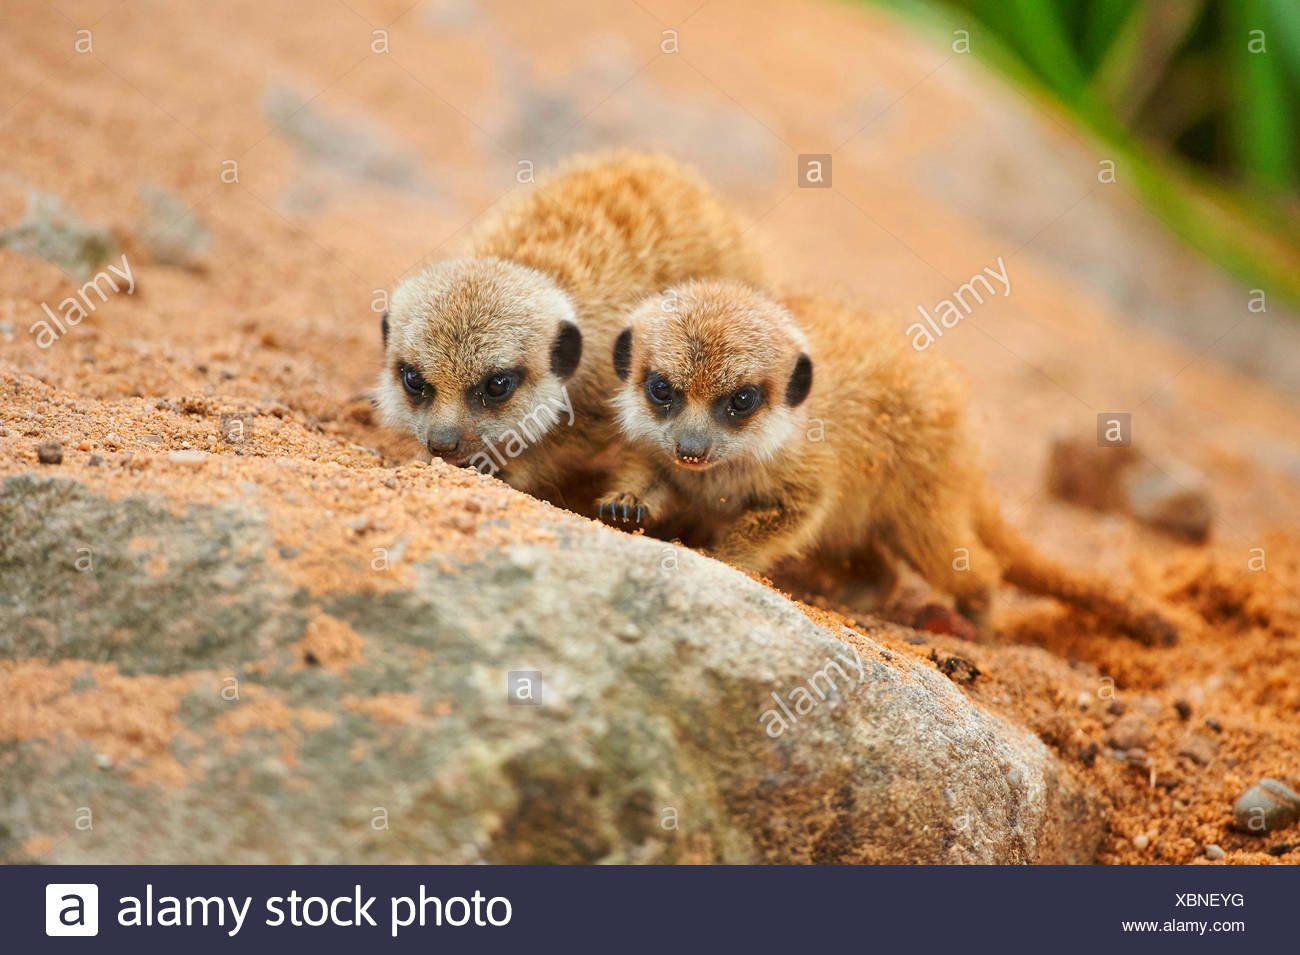 suricate, slender-tailed meerkat (Suricata suricatta), two youngsters - Stock Image